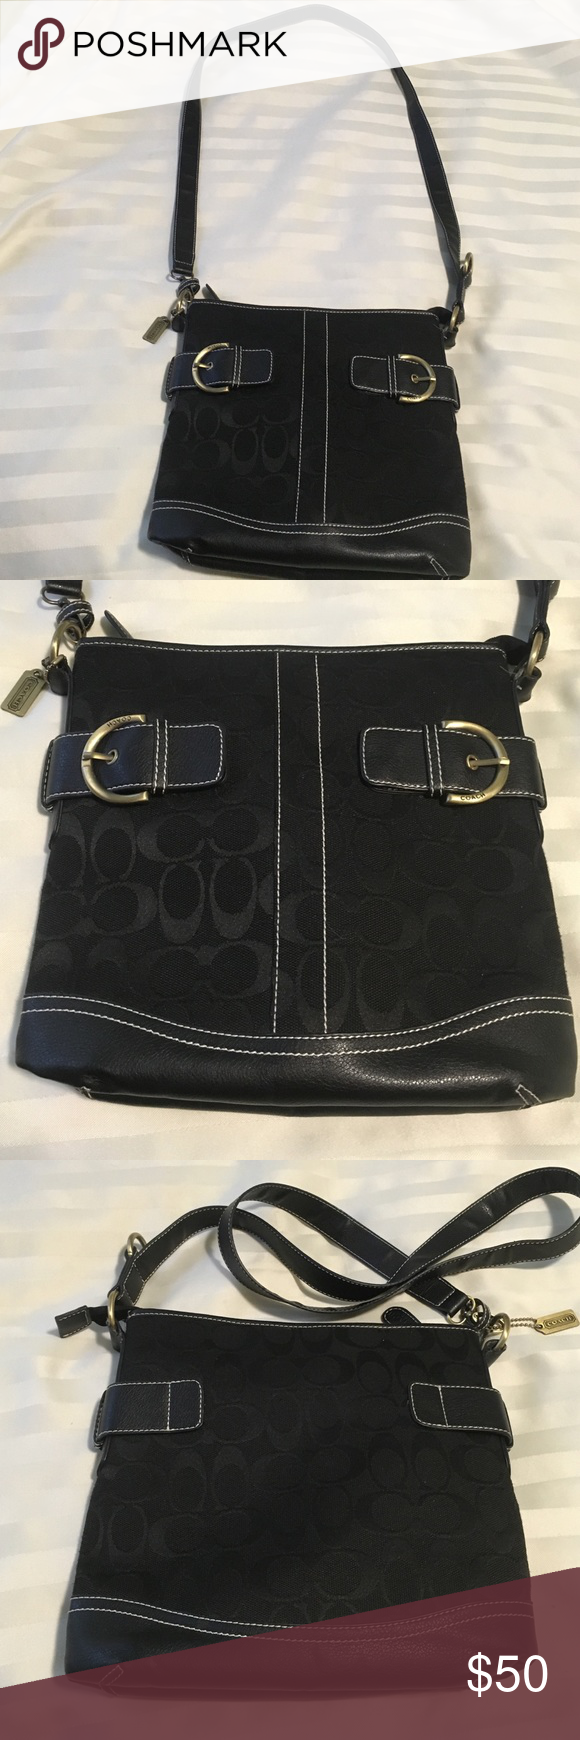 9e76070c8ff Signature coach cross body purse This purse is pre-loved on the inside but  in